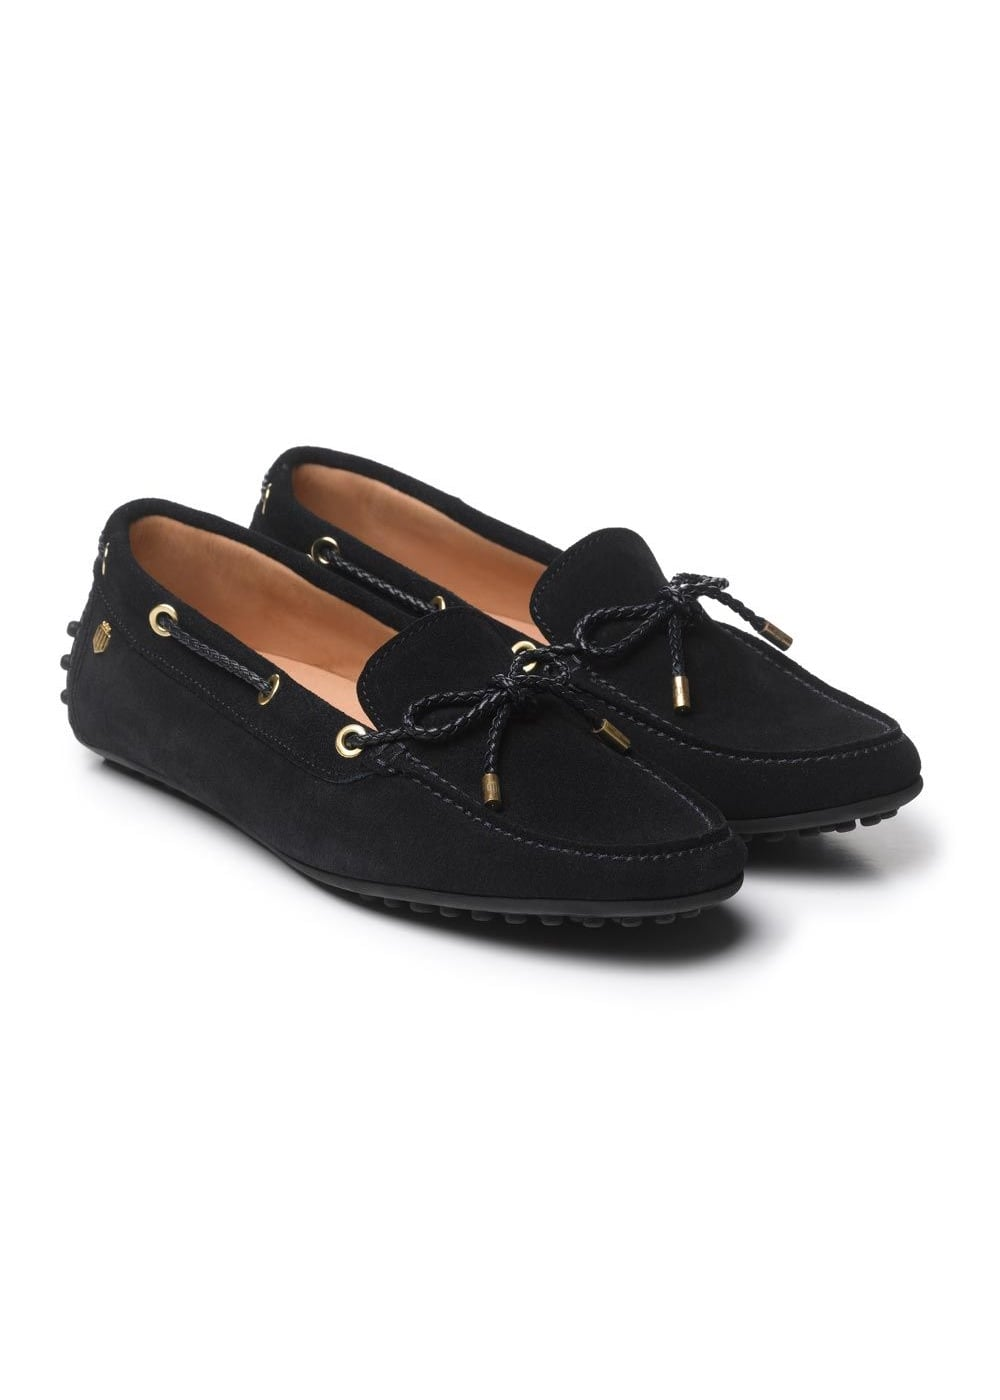 Fairfax and Favor Henley Suede Shoes  Large Image